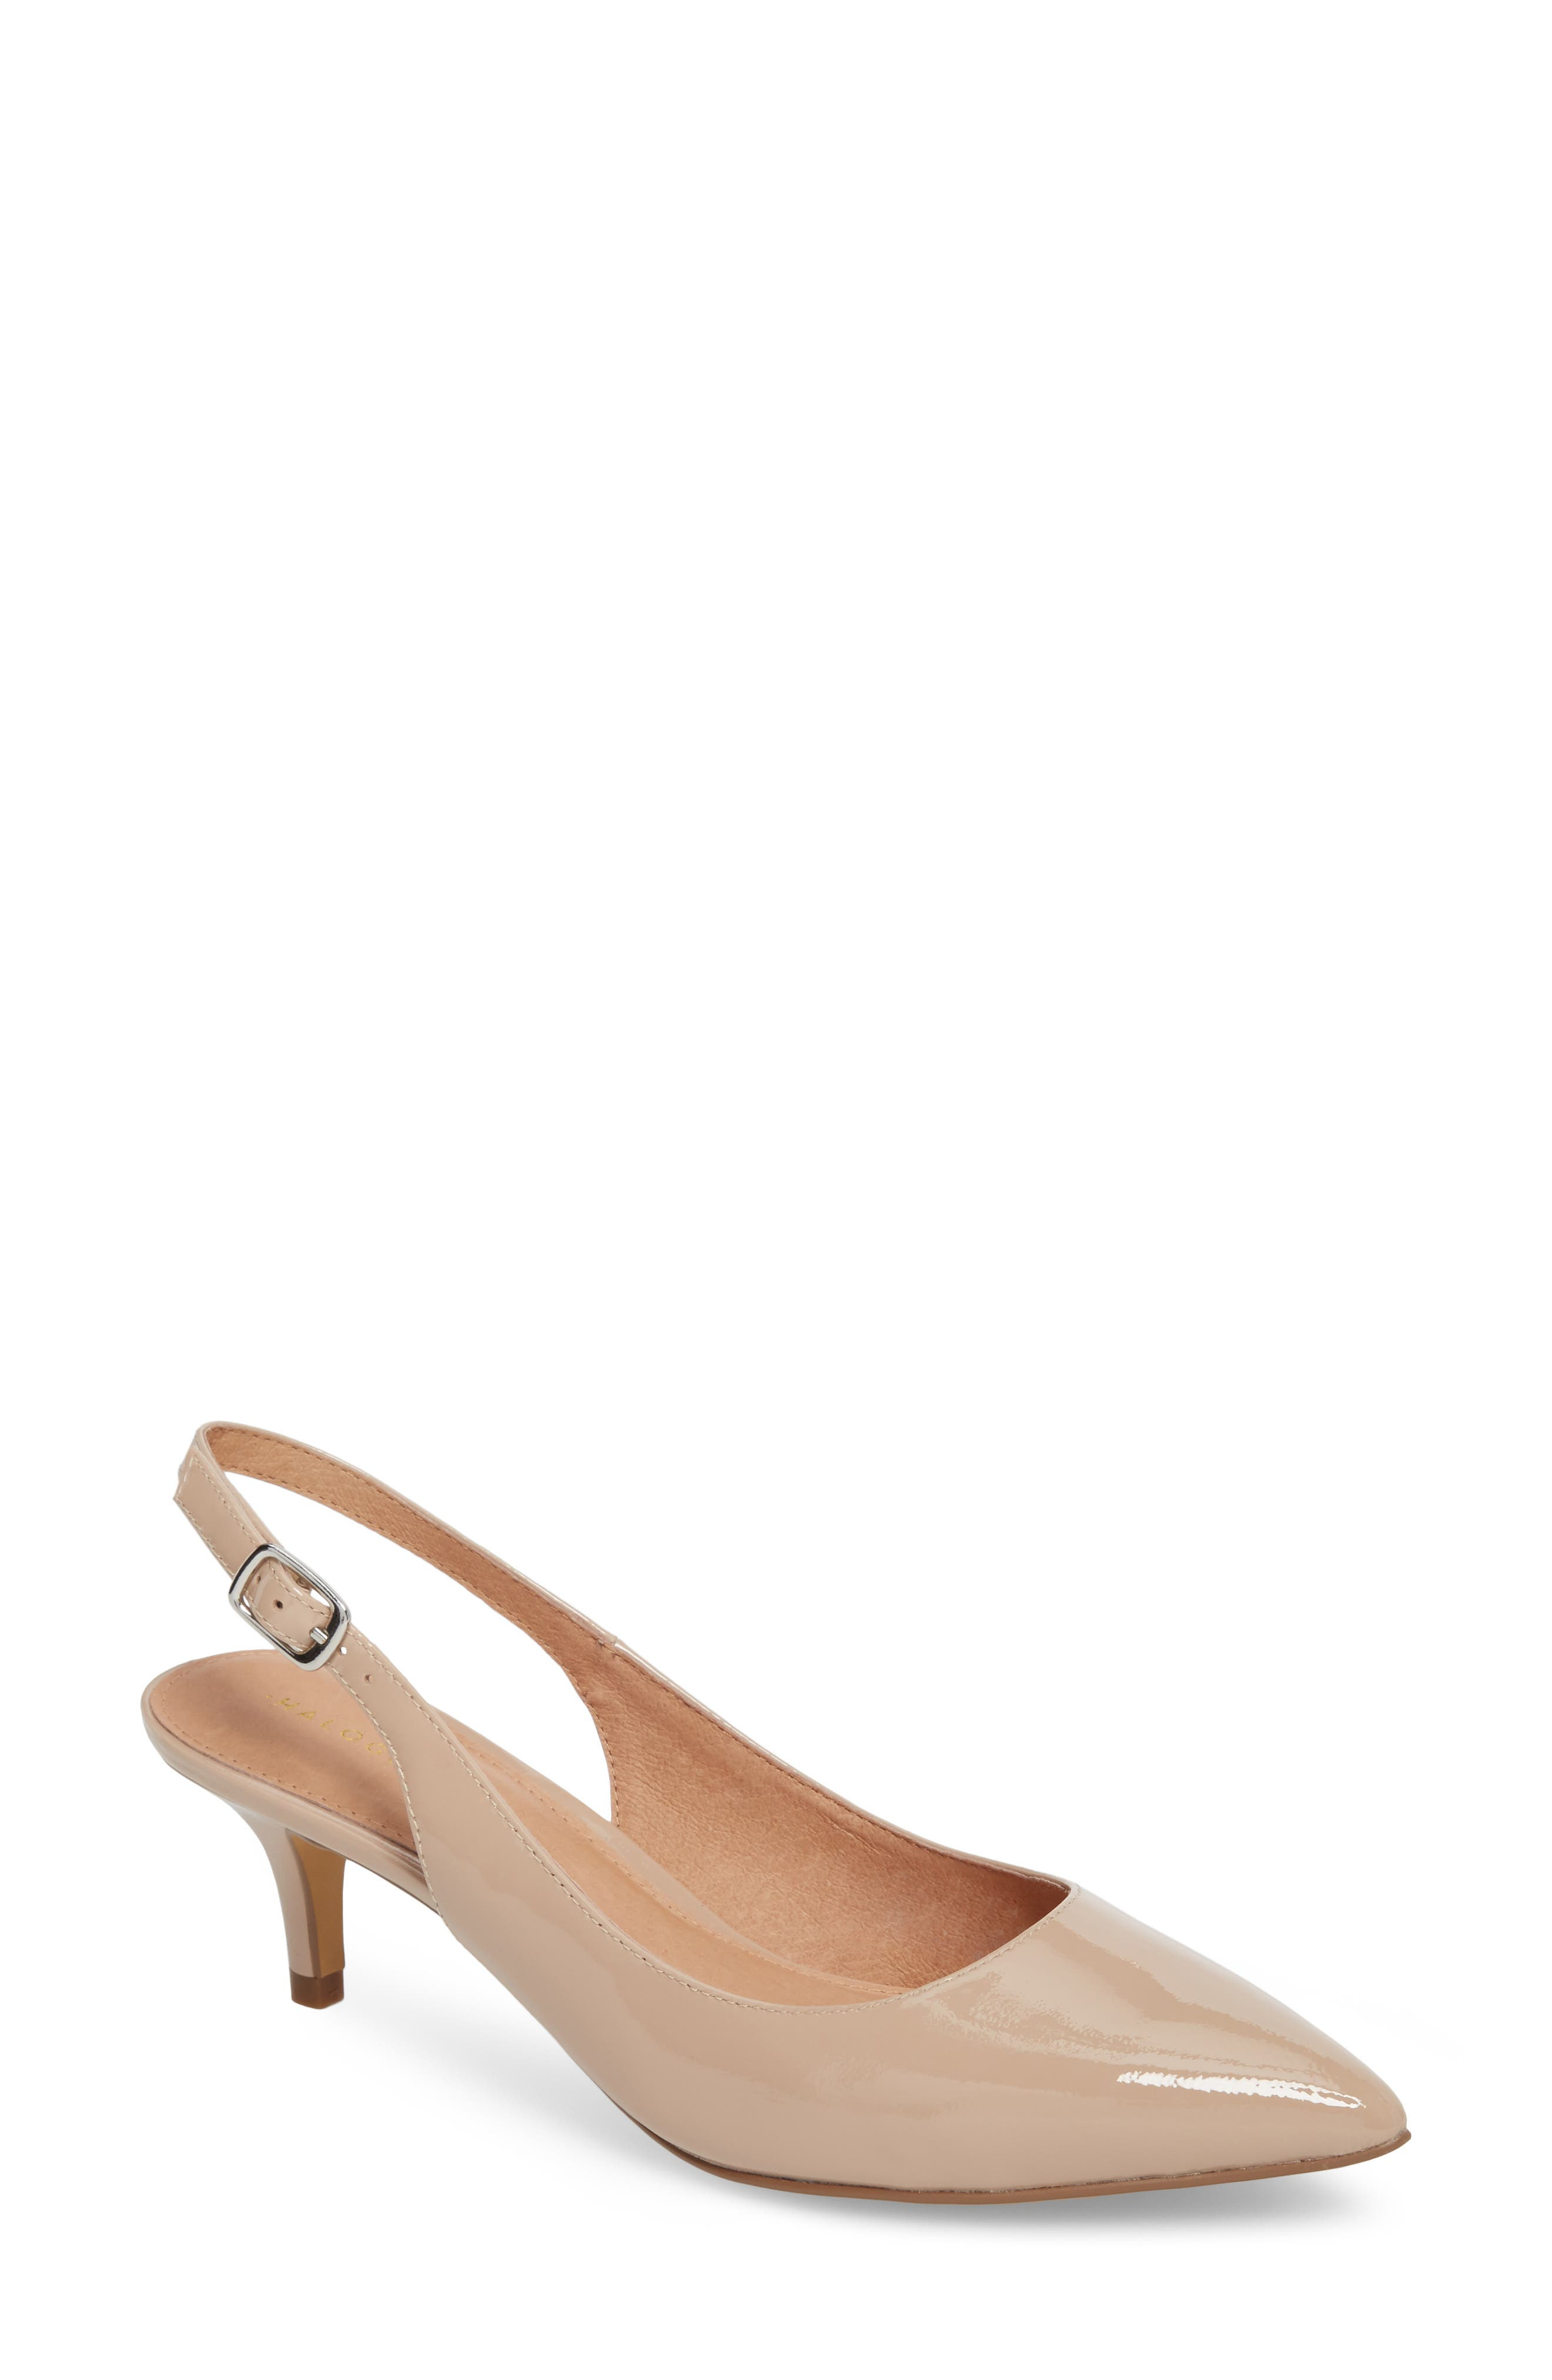 Nude Minnie Pumps clearance store cheap online clearance exclusive clearance low price outlet locations for sale bfjqv